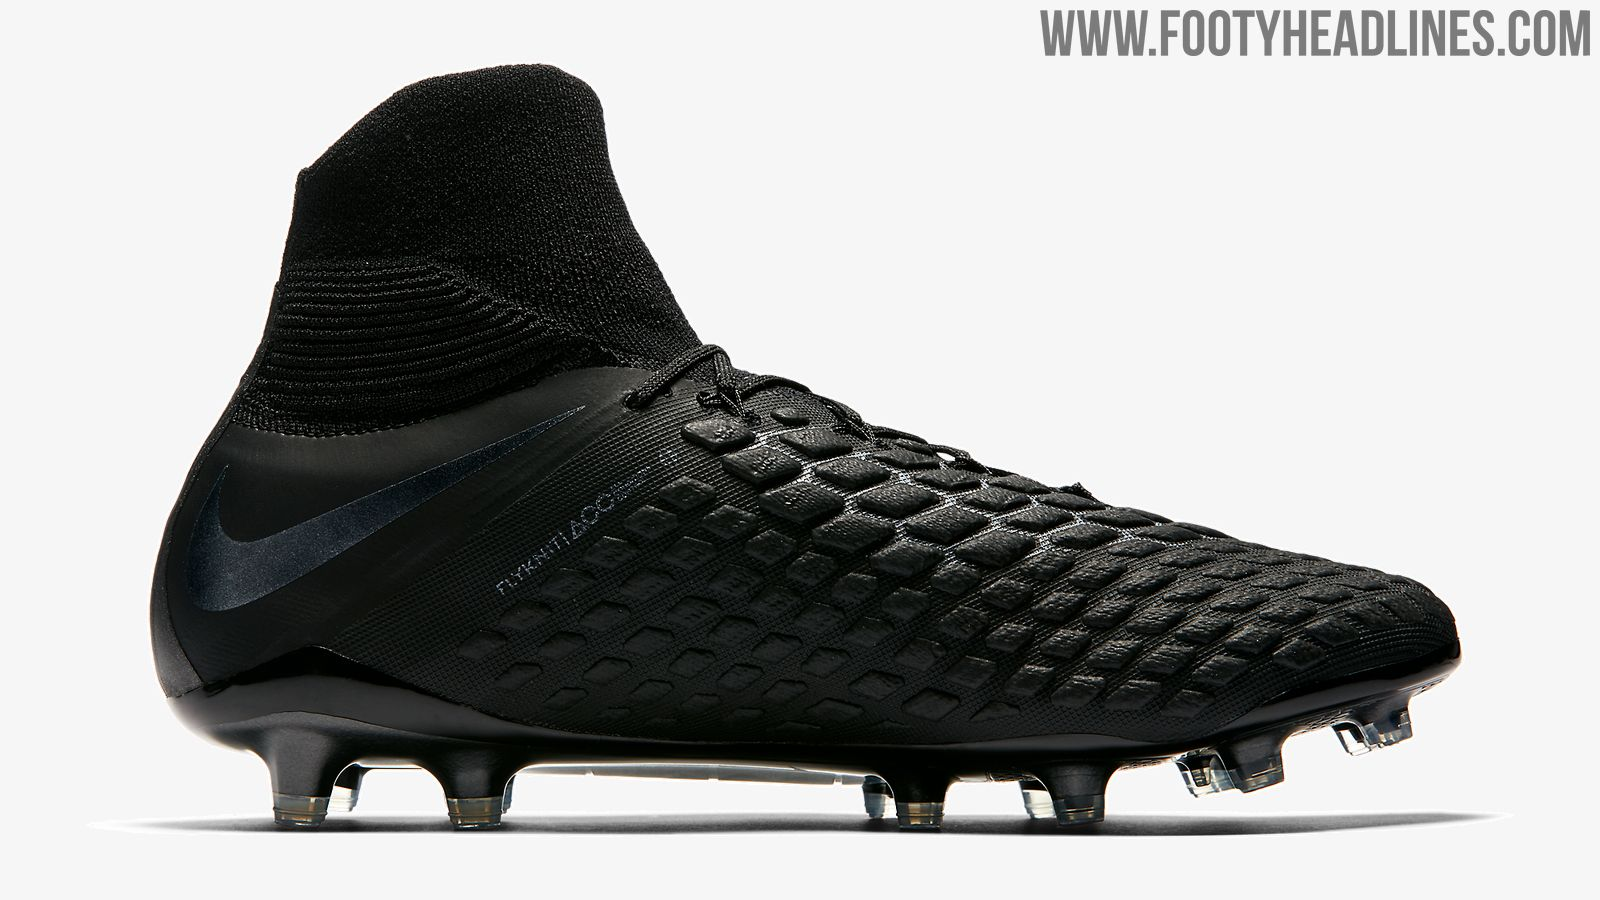 wholesale dealer e0aeb 9ff53 If we look at the tech of the totally black Nike Hypervenom football boots,  the cleats are the same as all previous paint job of the agility silo that  was ...